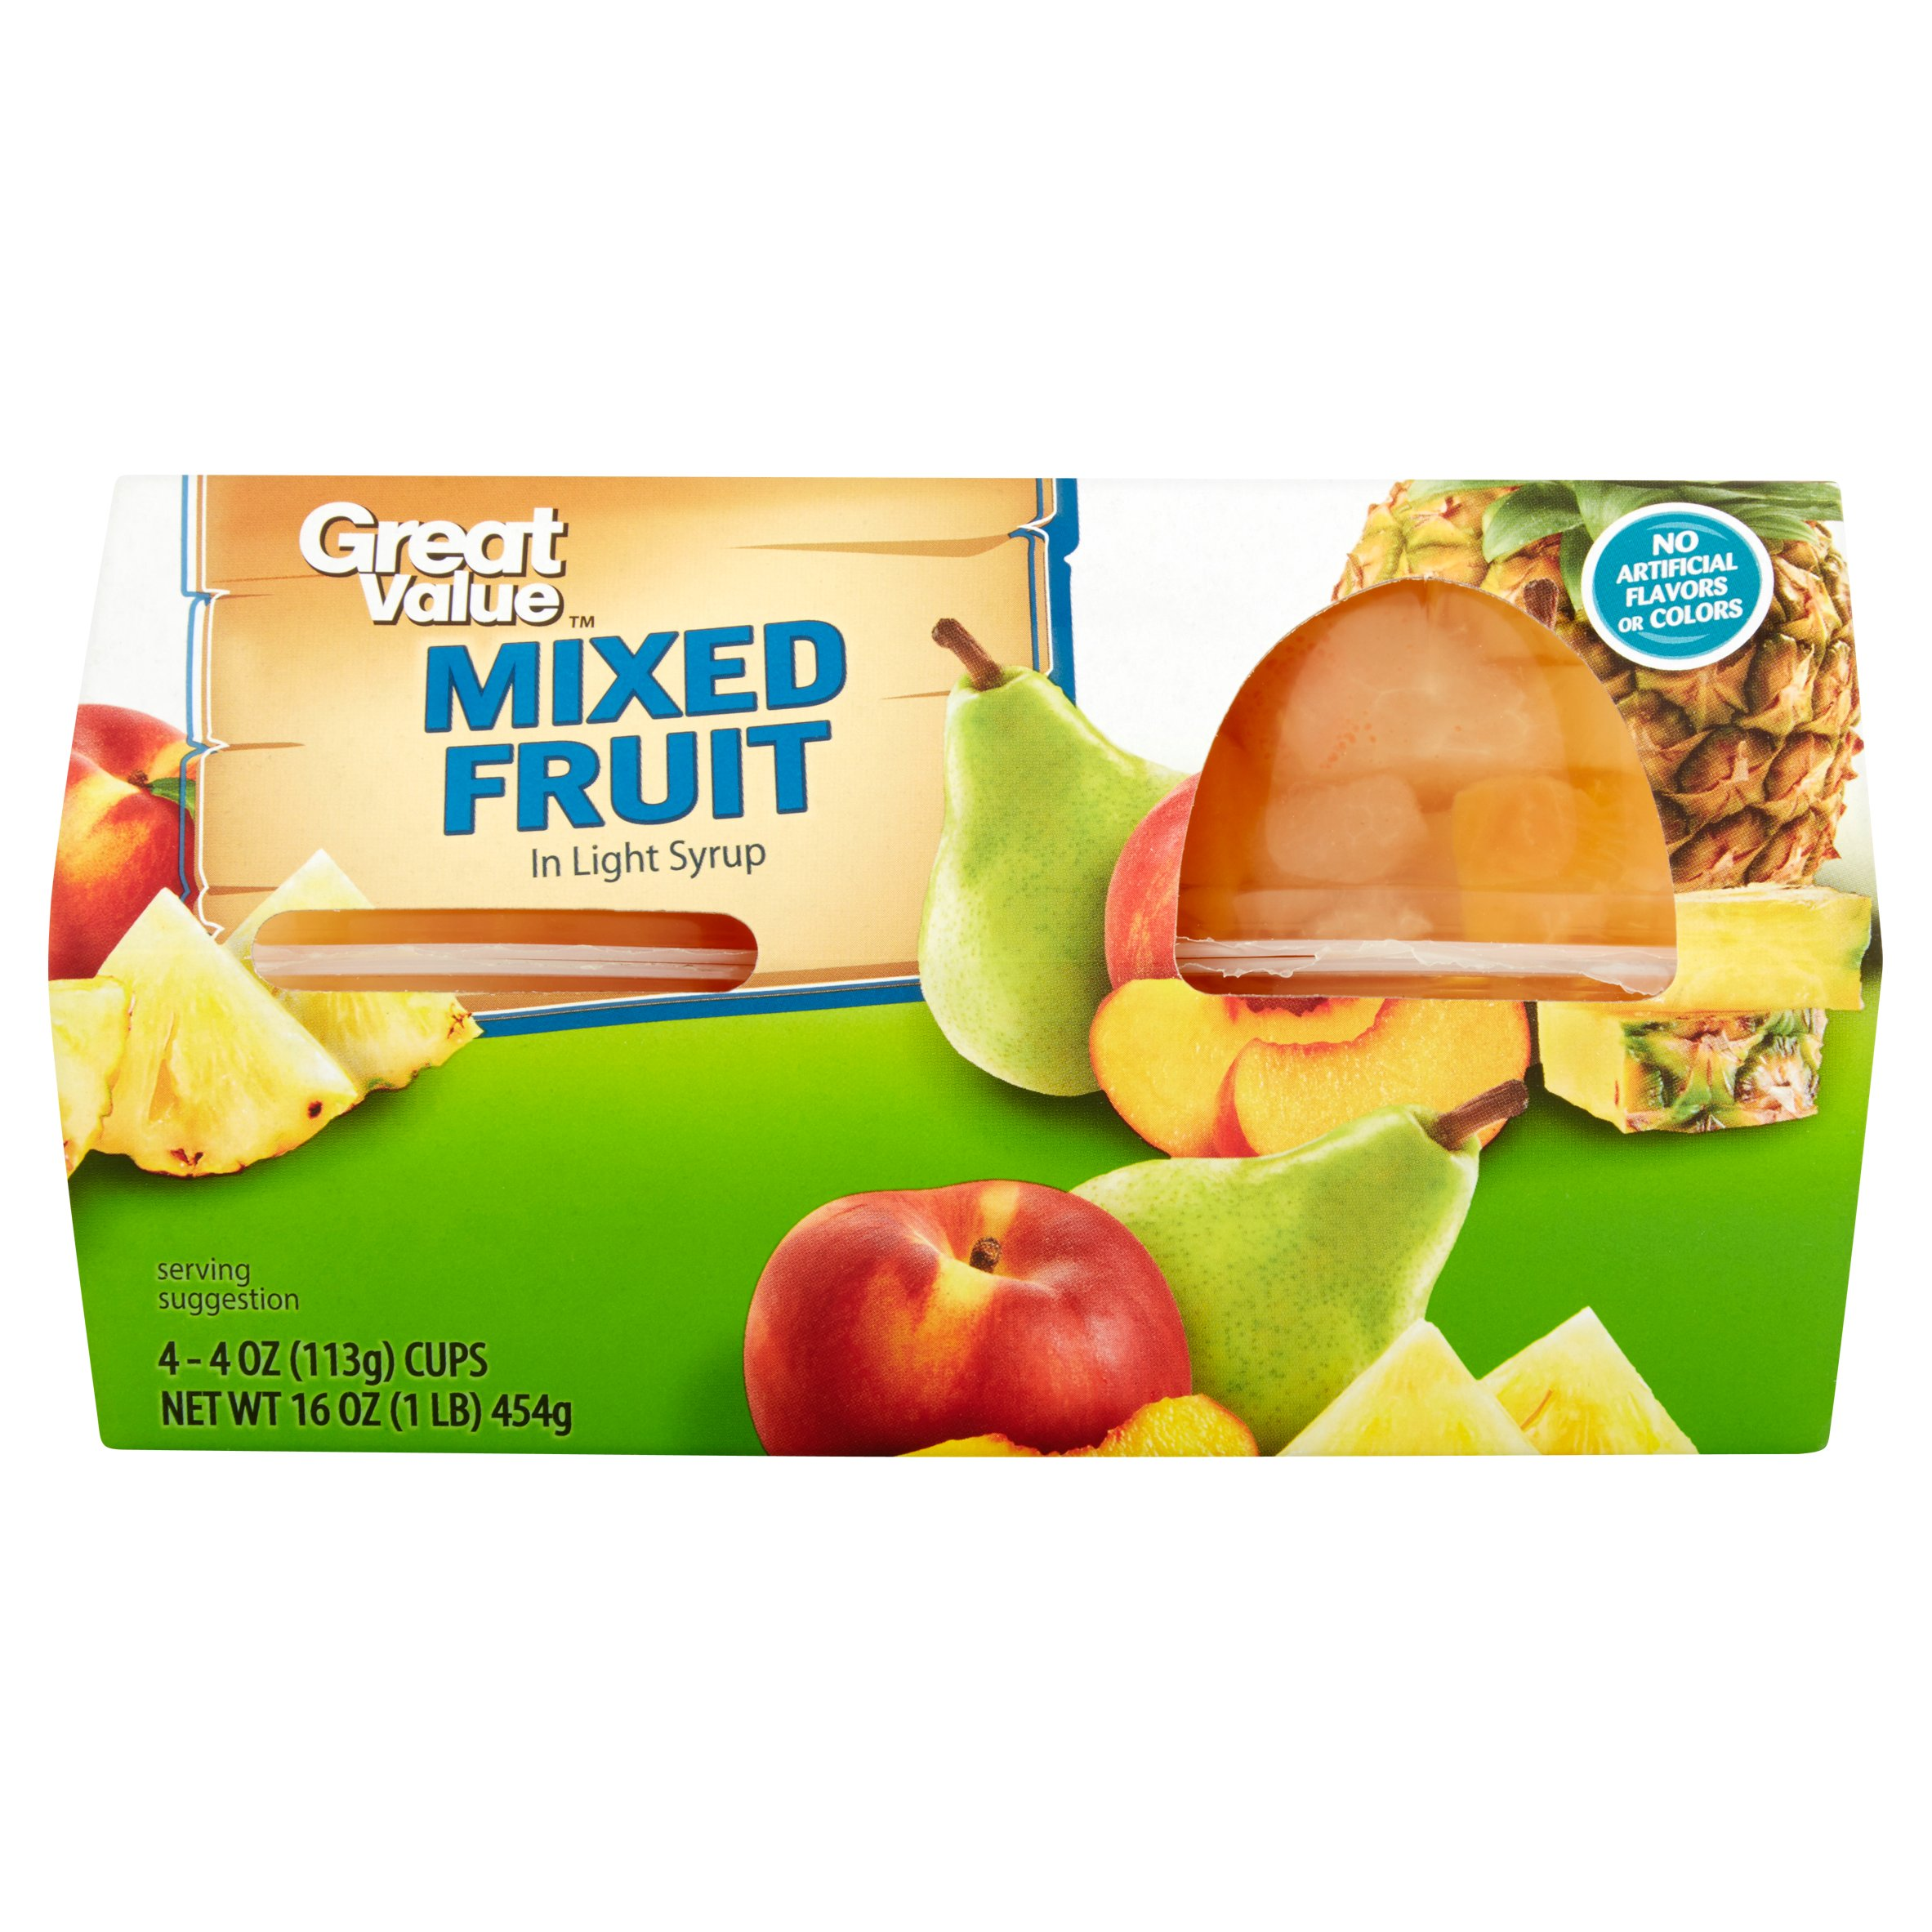 Great Value Mixed Fruit in Light Syrup, 4 oz, 4 Count - Walmart.com